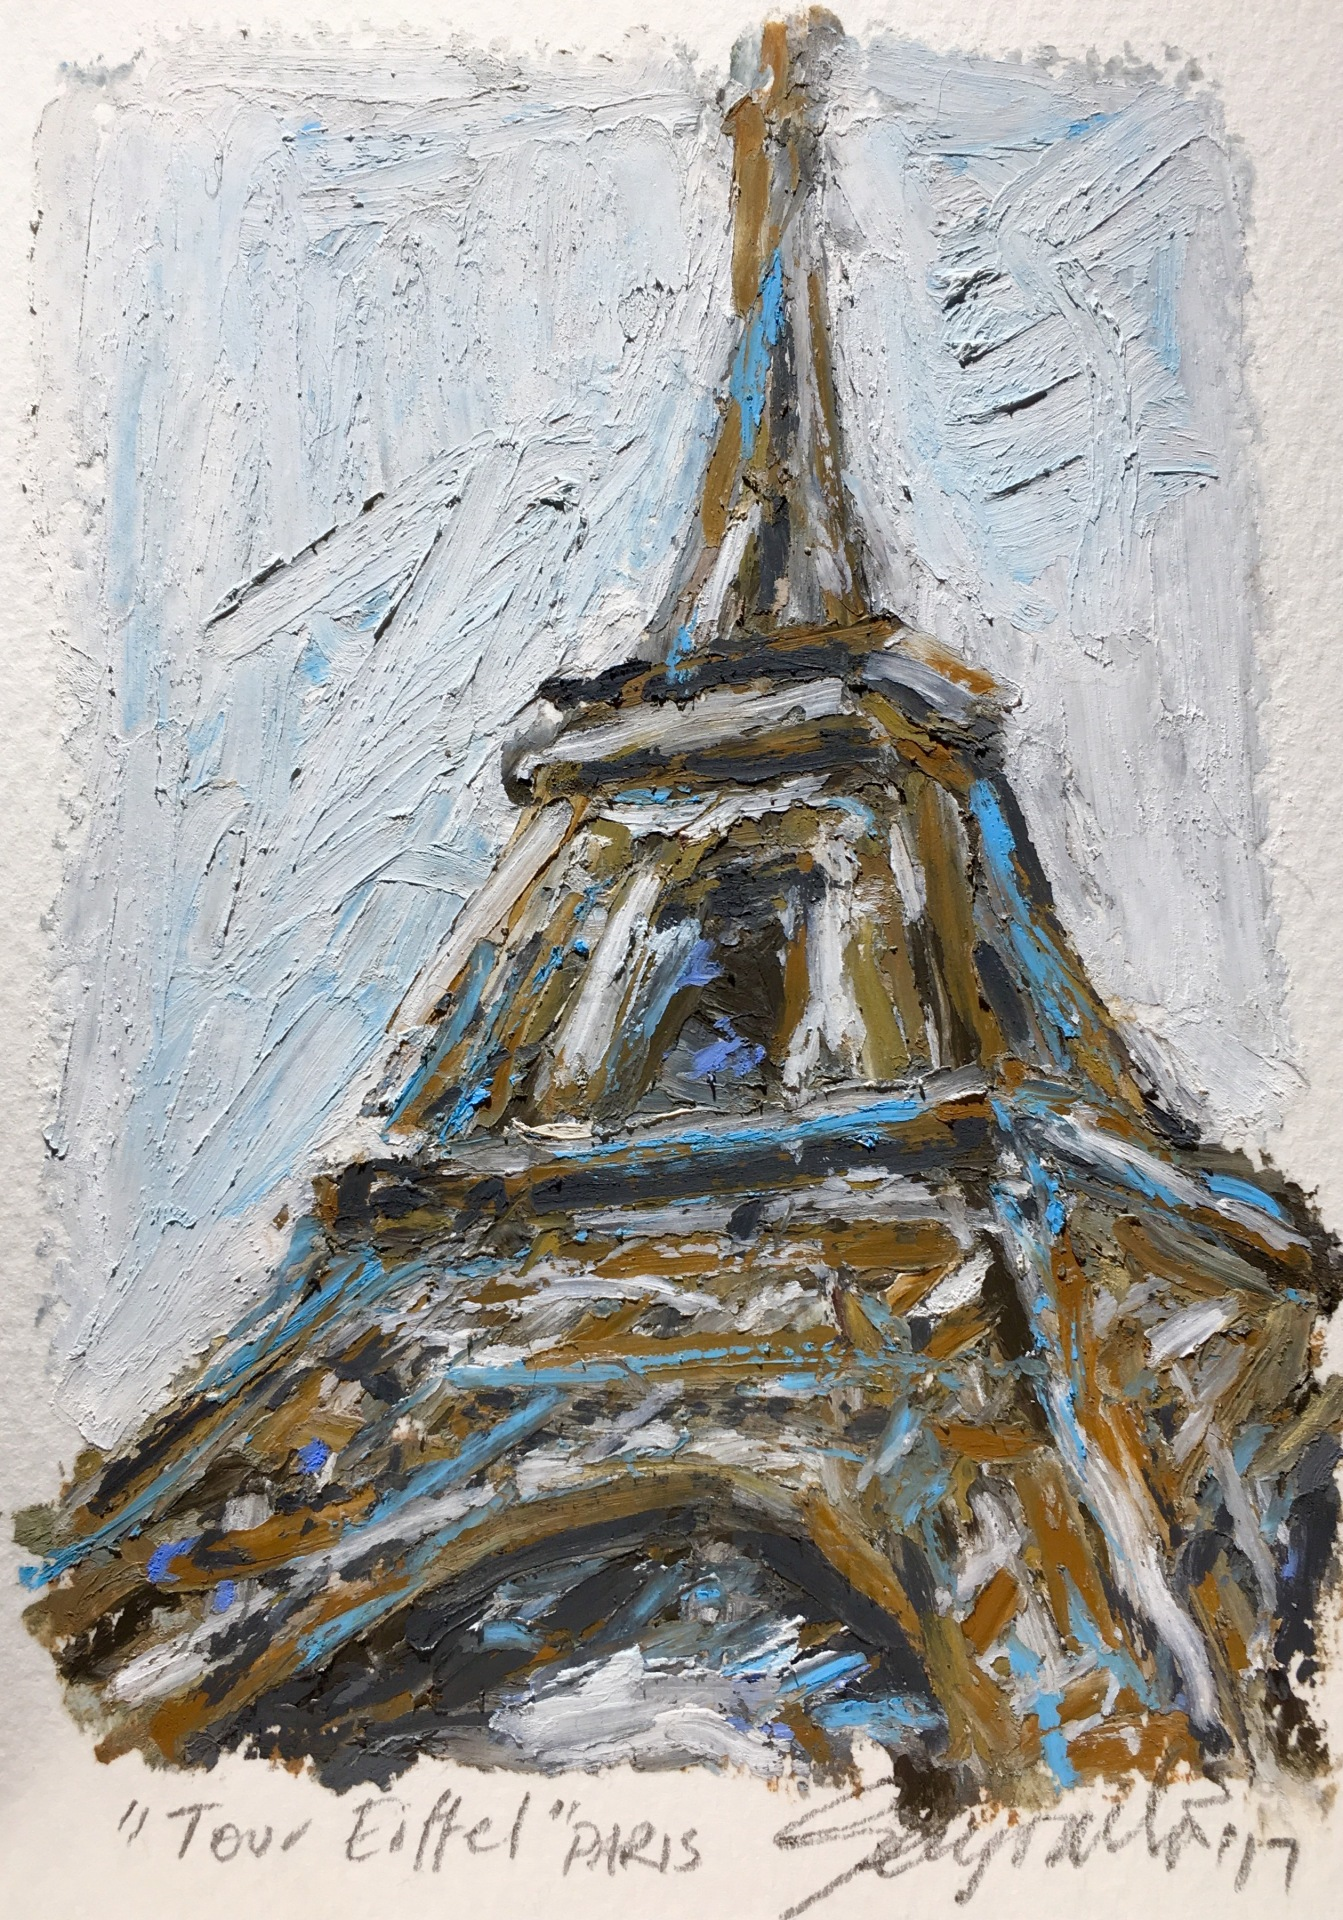 Tour Eiffel Paris (SOLD)